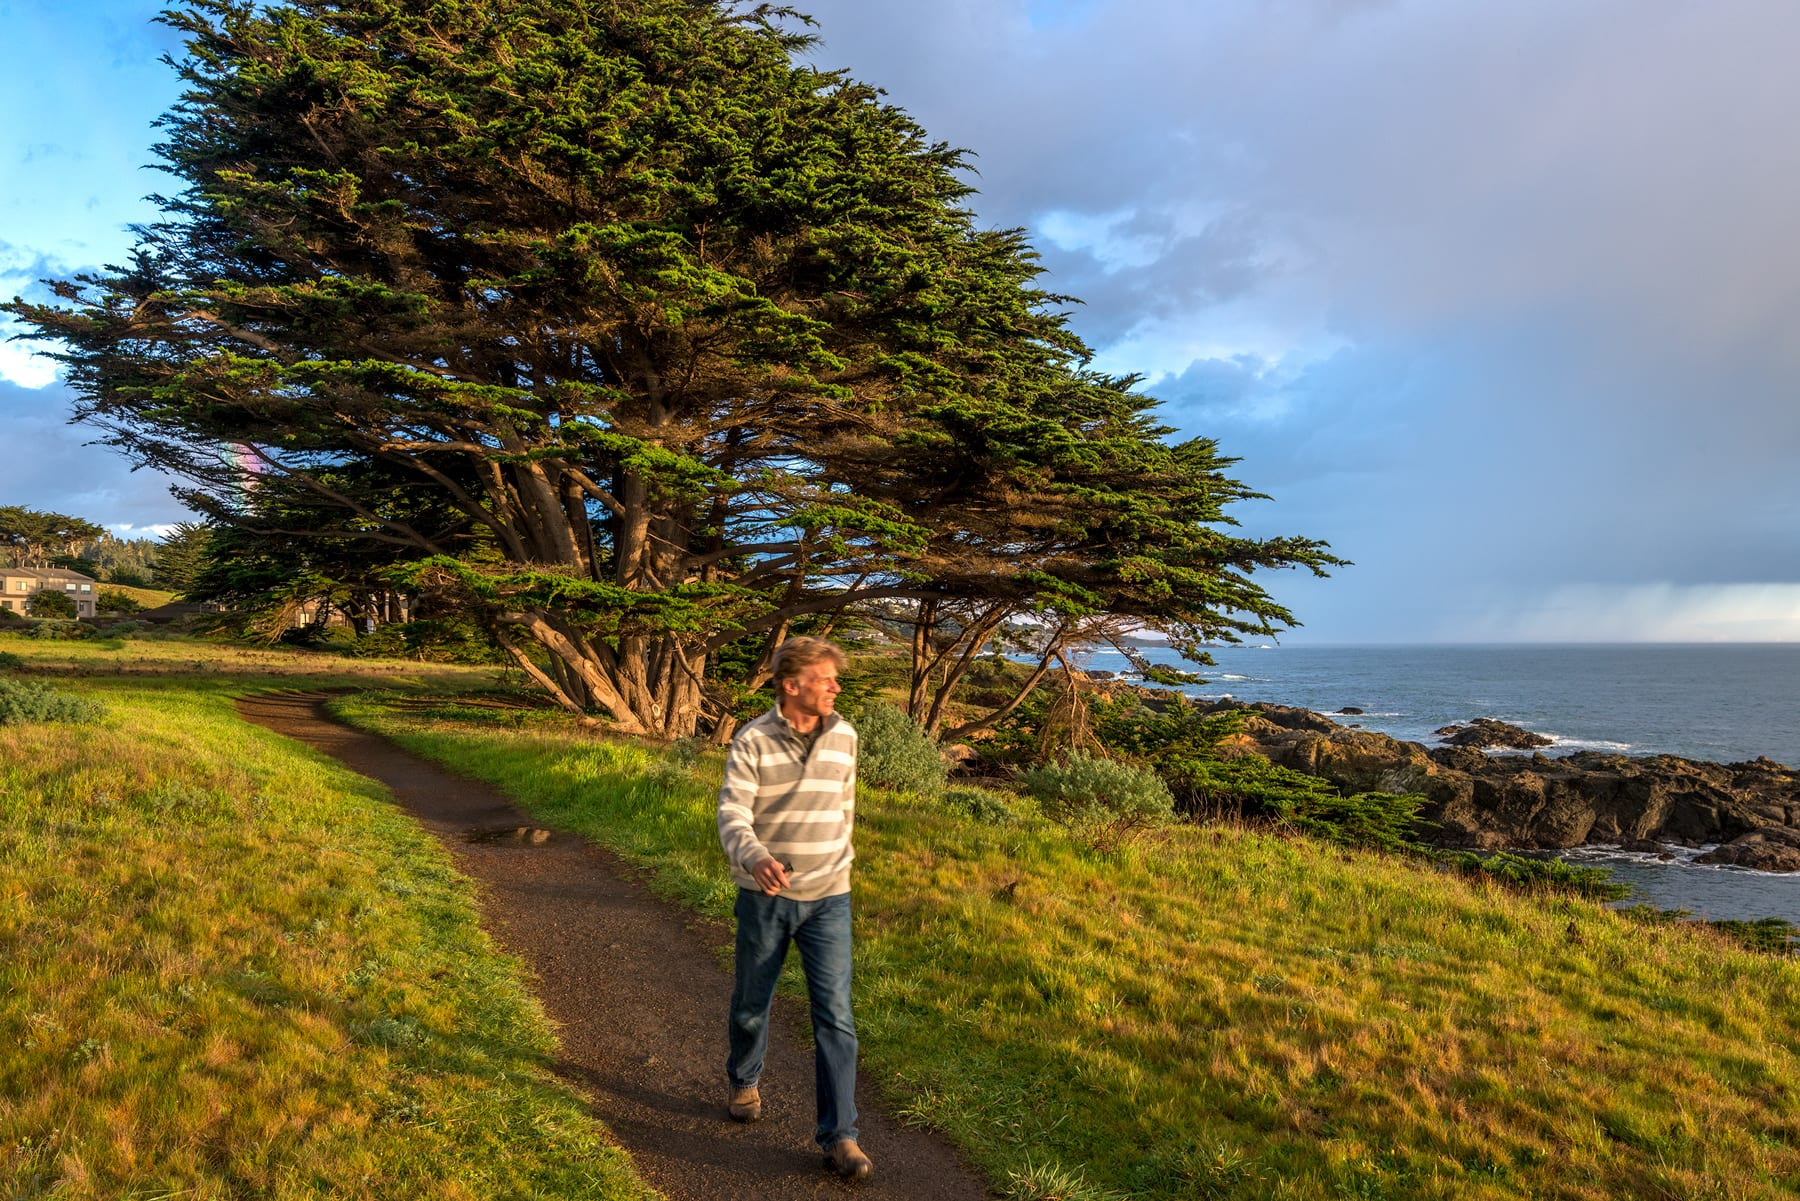 Sea Ranch Trails Available fronm the Comfort of Home on